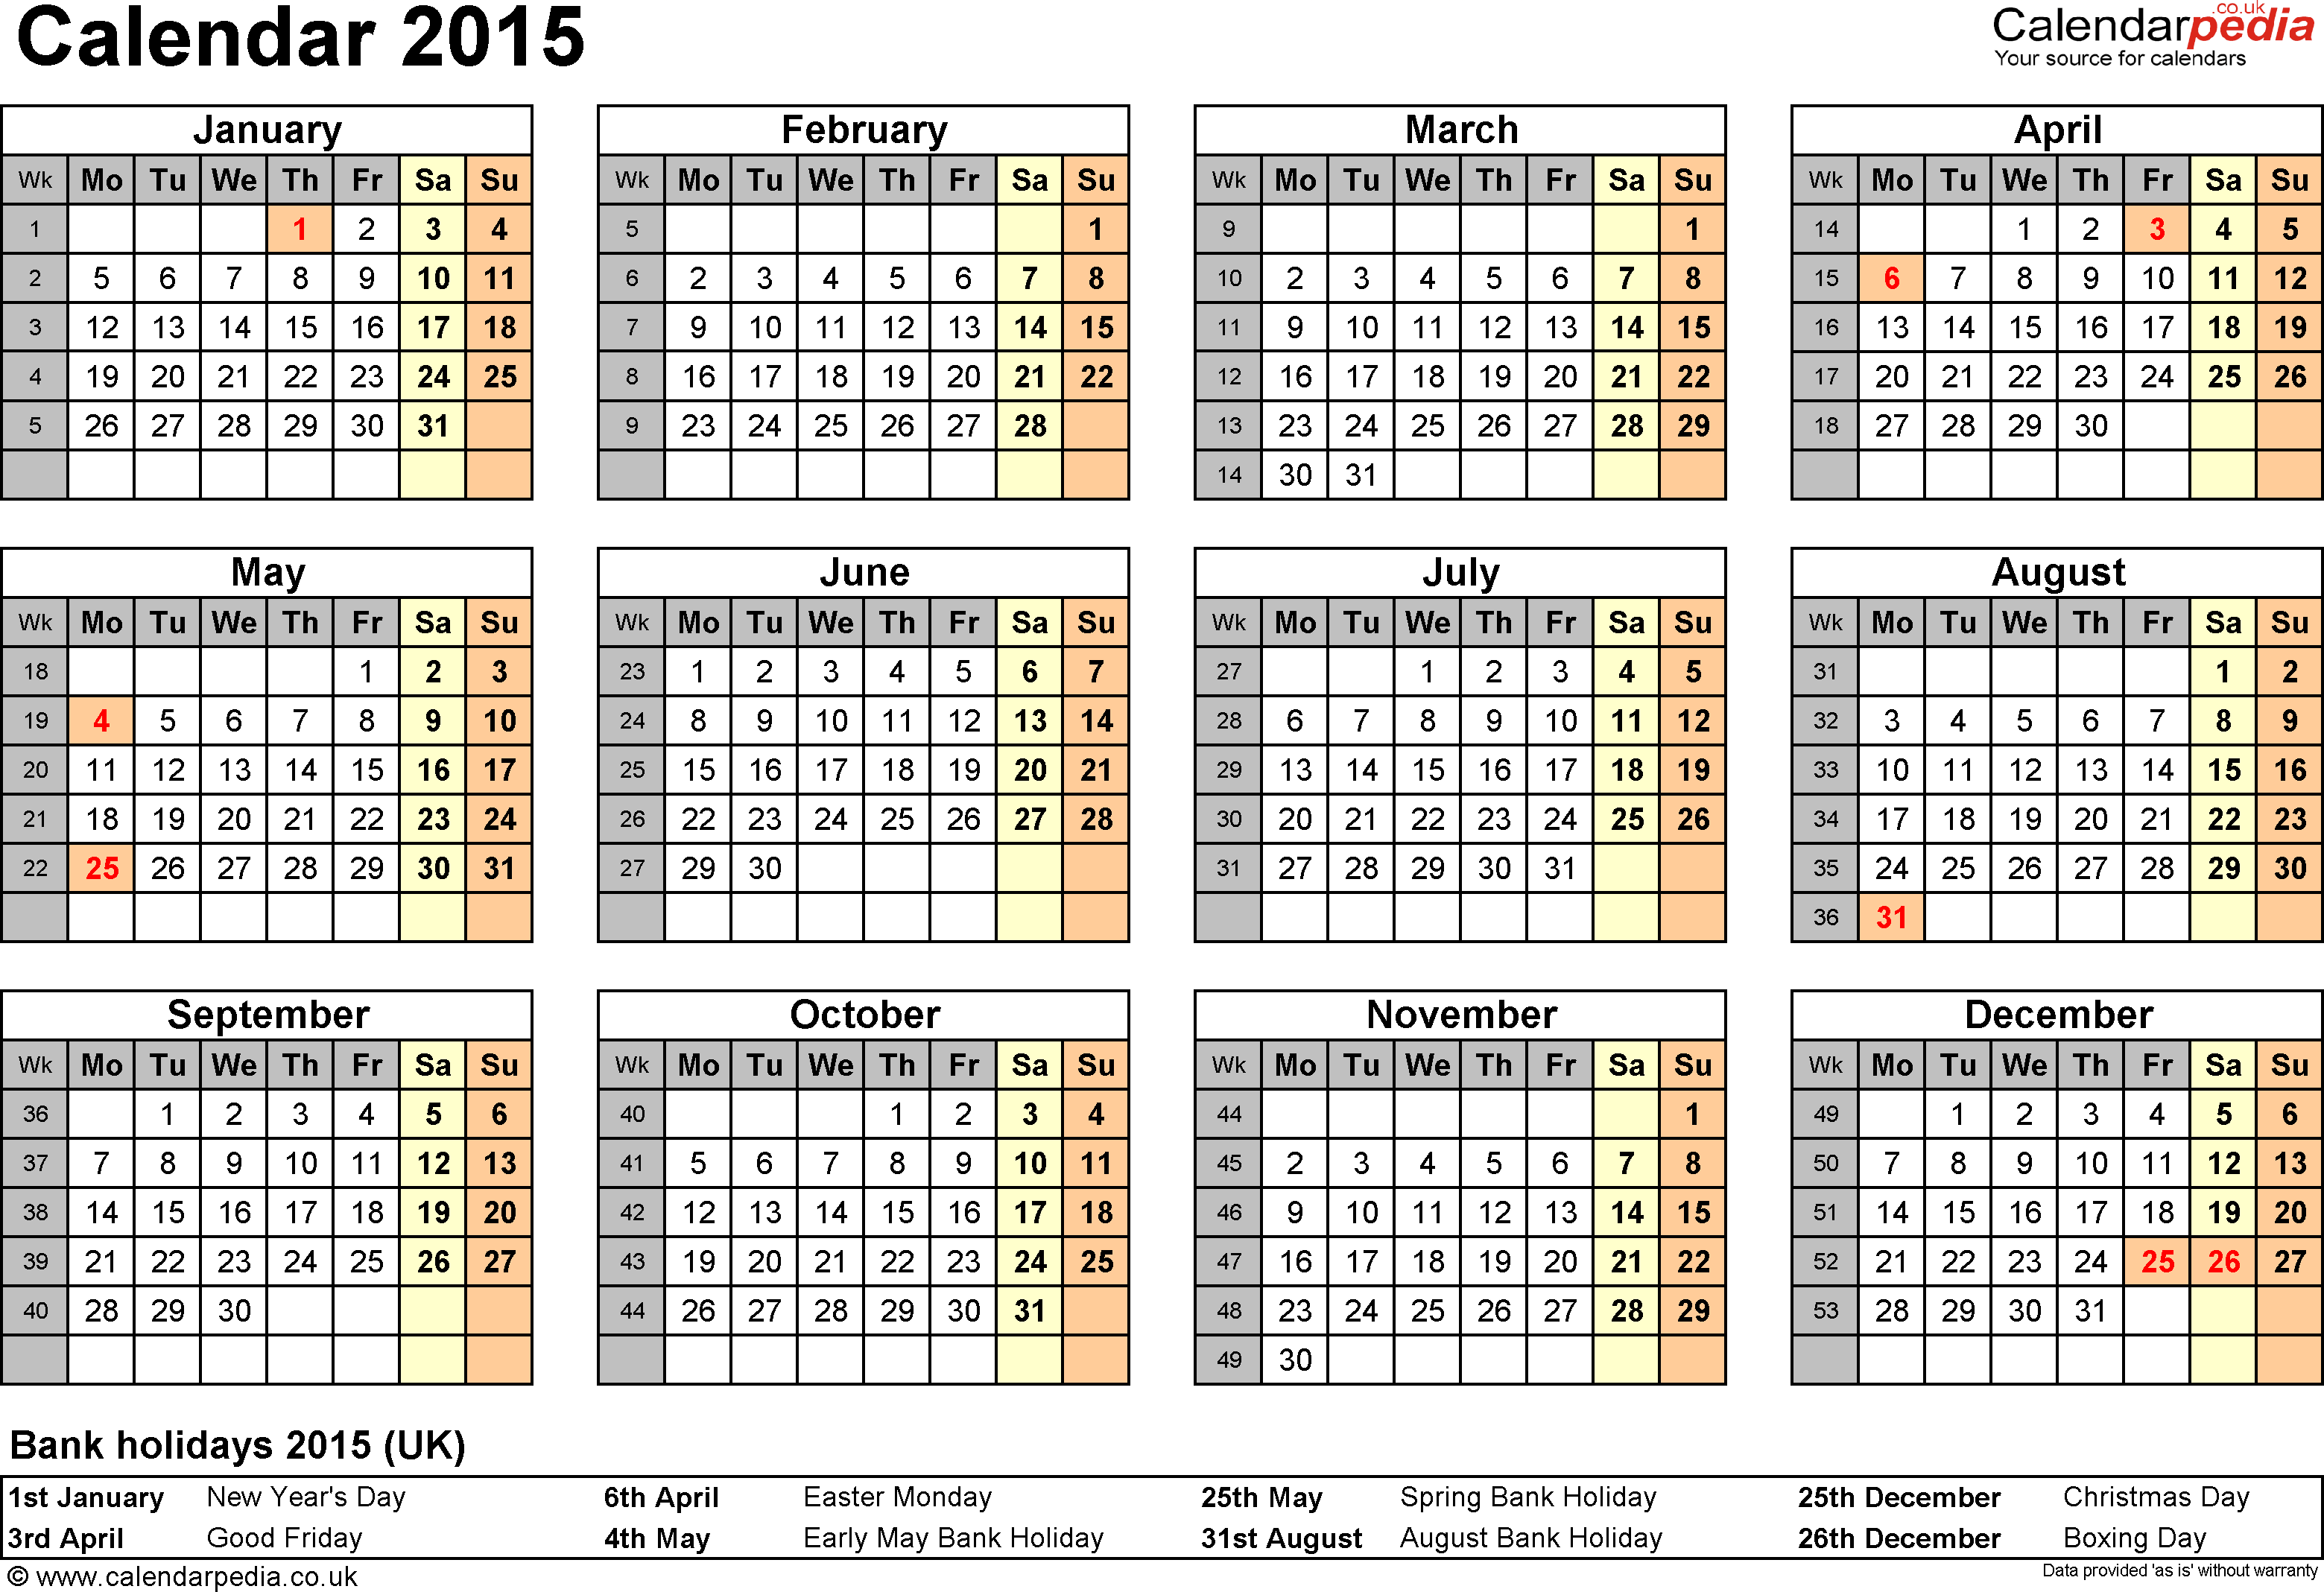 Template 8: Yearly calendar 2015 as Word template, year overview, 1 page